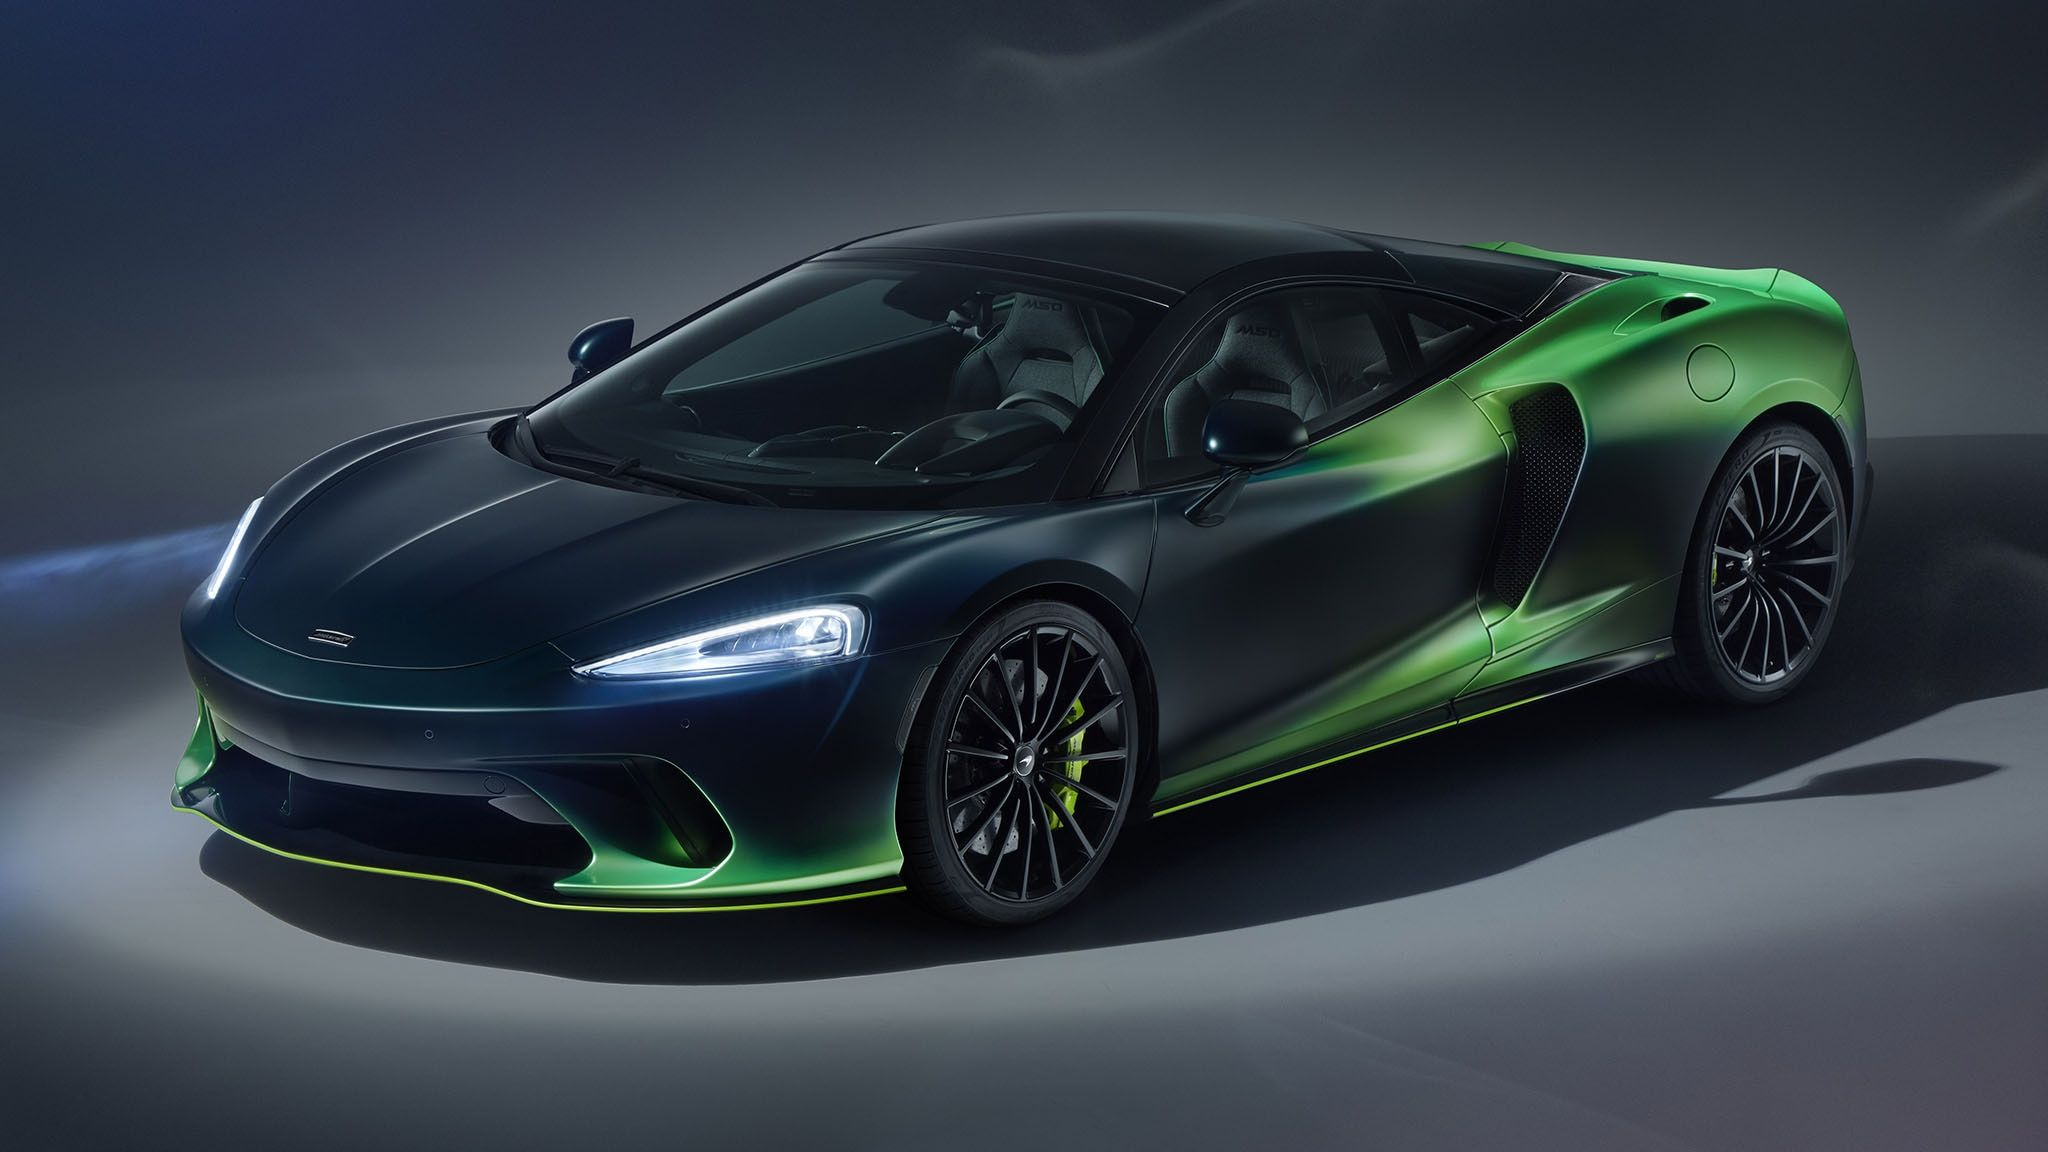 2020 Mclaren Gt Goes Green Thanks To Mclaren Special Operations In 2020 Super Cars Mclaren Geneva Motor Show